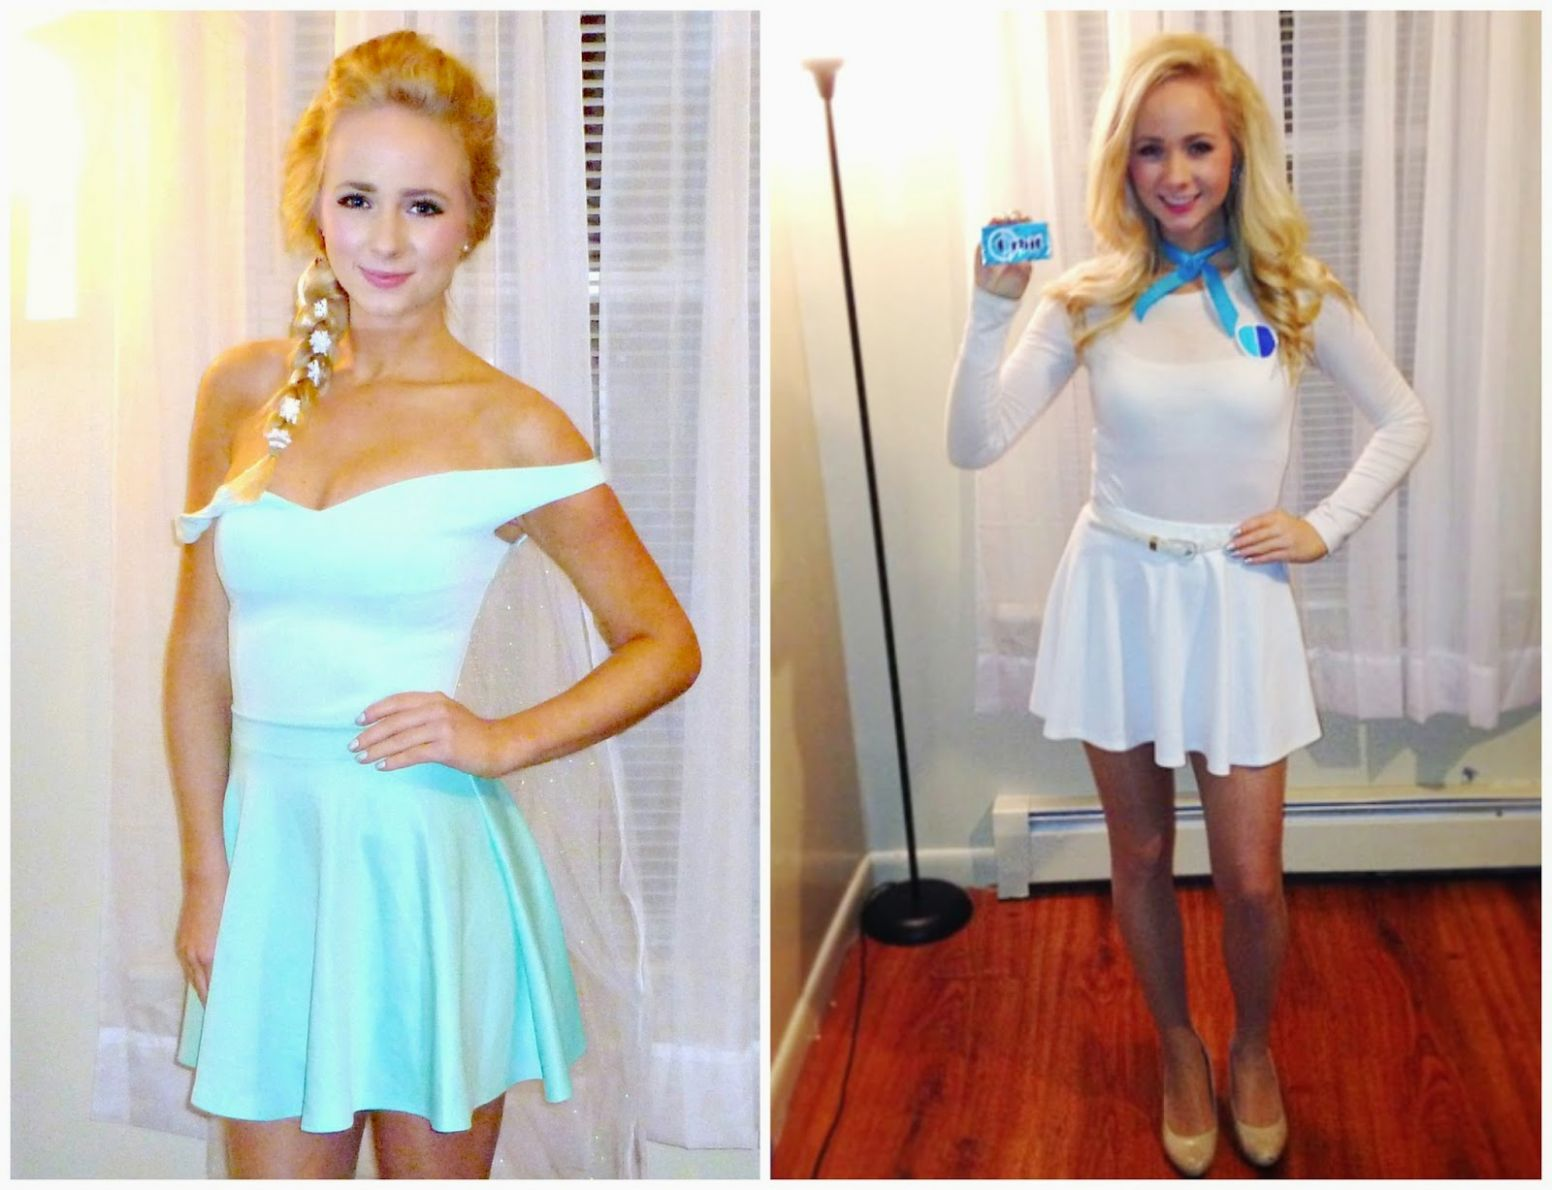 New 8+ Blonde Hair Halloween Ideas - halloween ideas short blonde hair